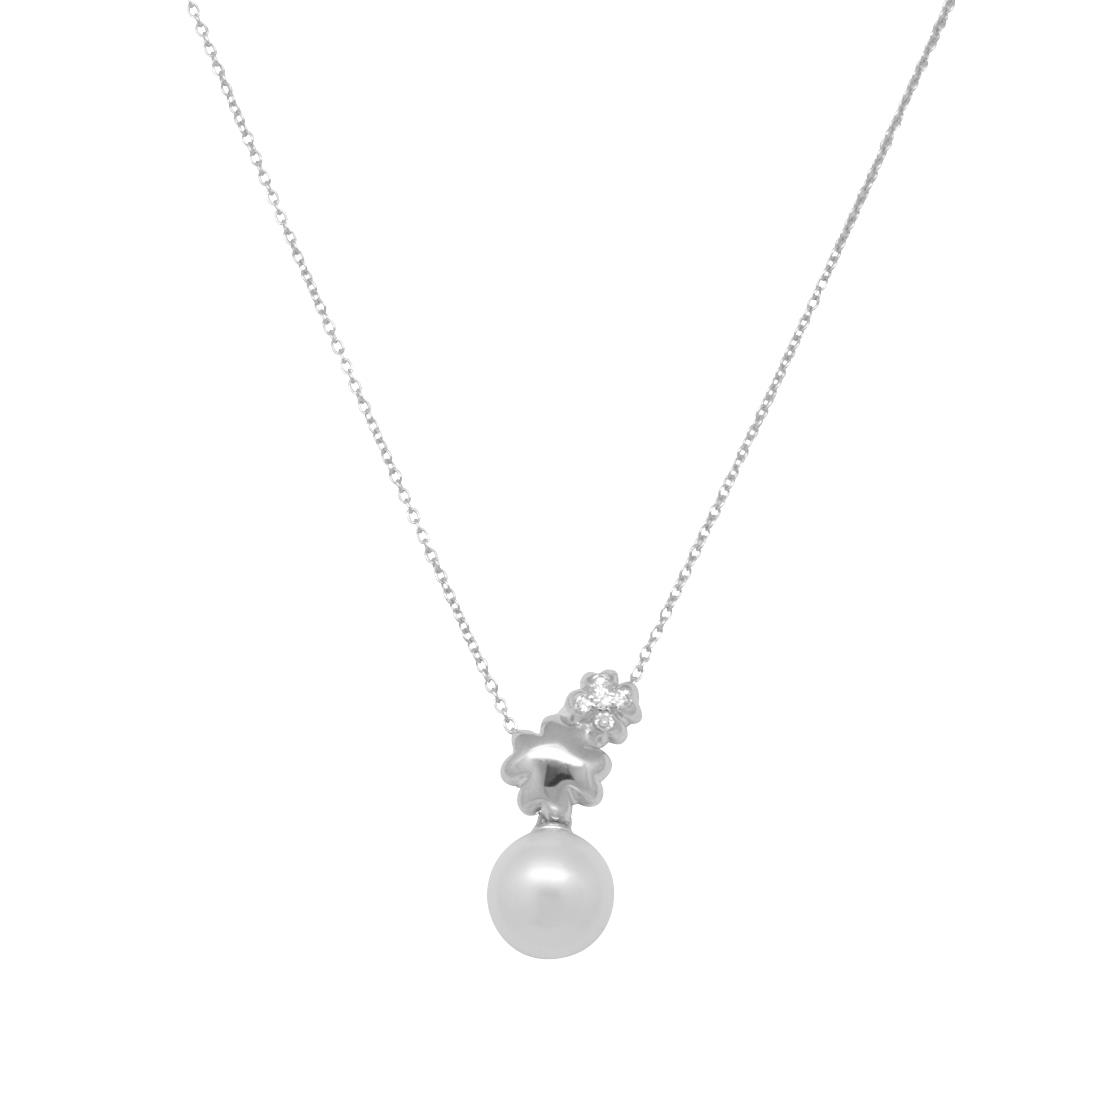 Collana con perla e diamante - BLISS